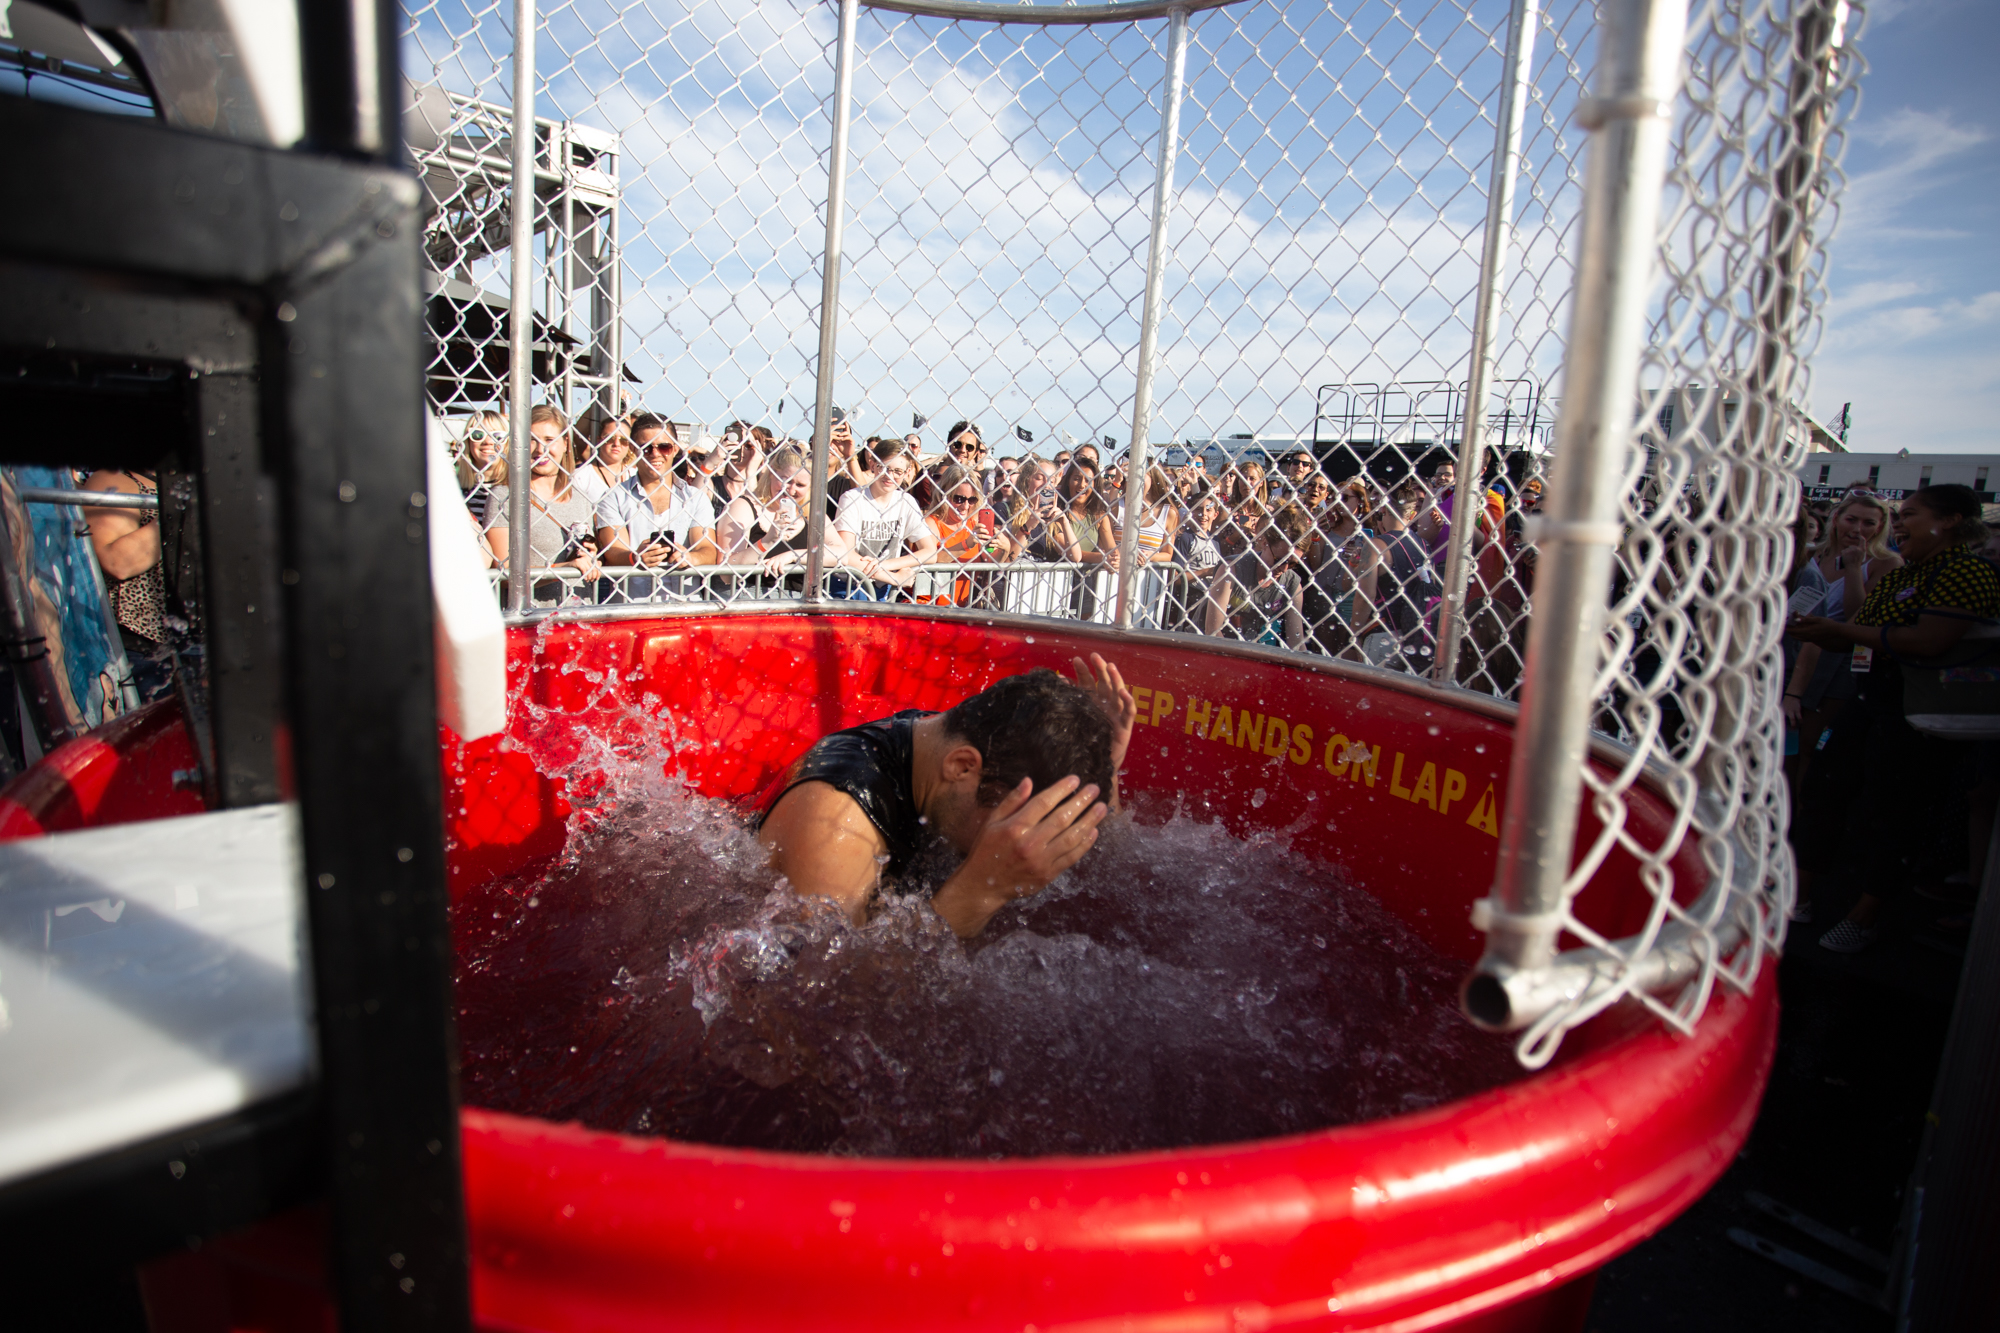 Jack Antonoff participates in a dunk tank for LGBTQ+ equality foundation The Ally Coalition at Shadow of the City festival in Asbury Park, NJ on August 25, 2018.